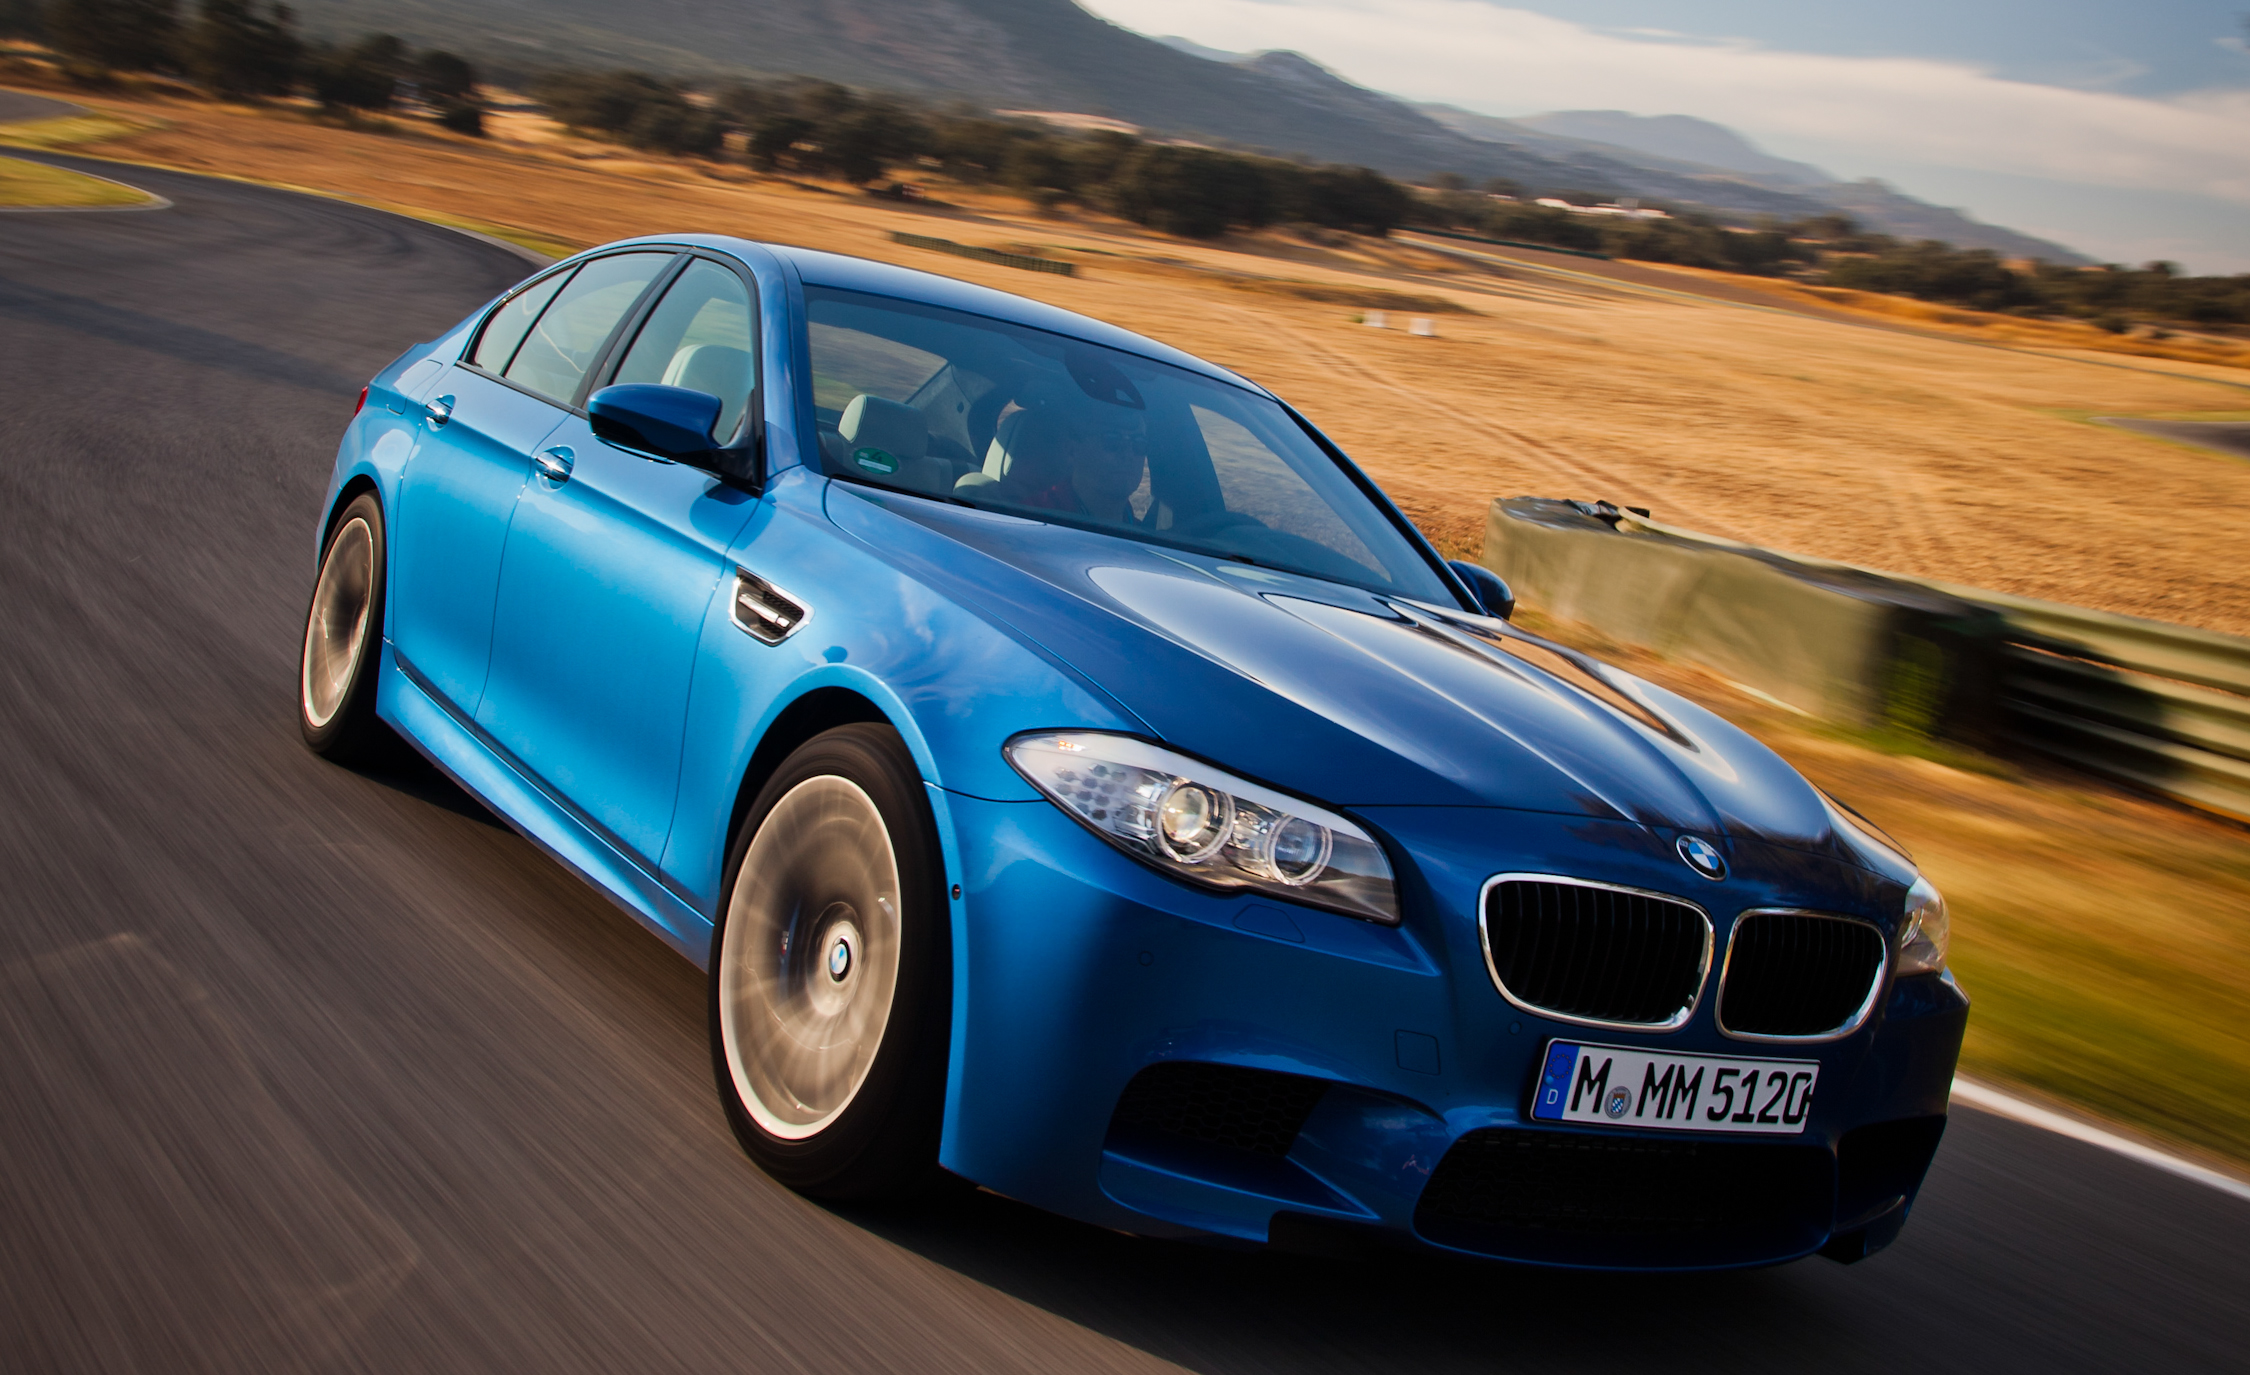 2013 BMW M (View 21 of 22)